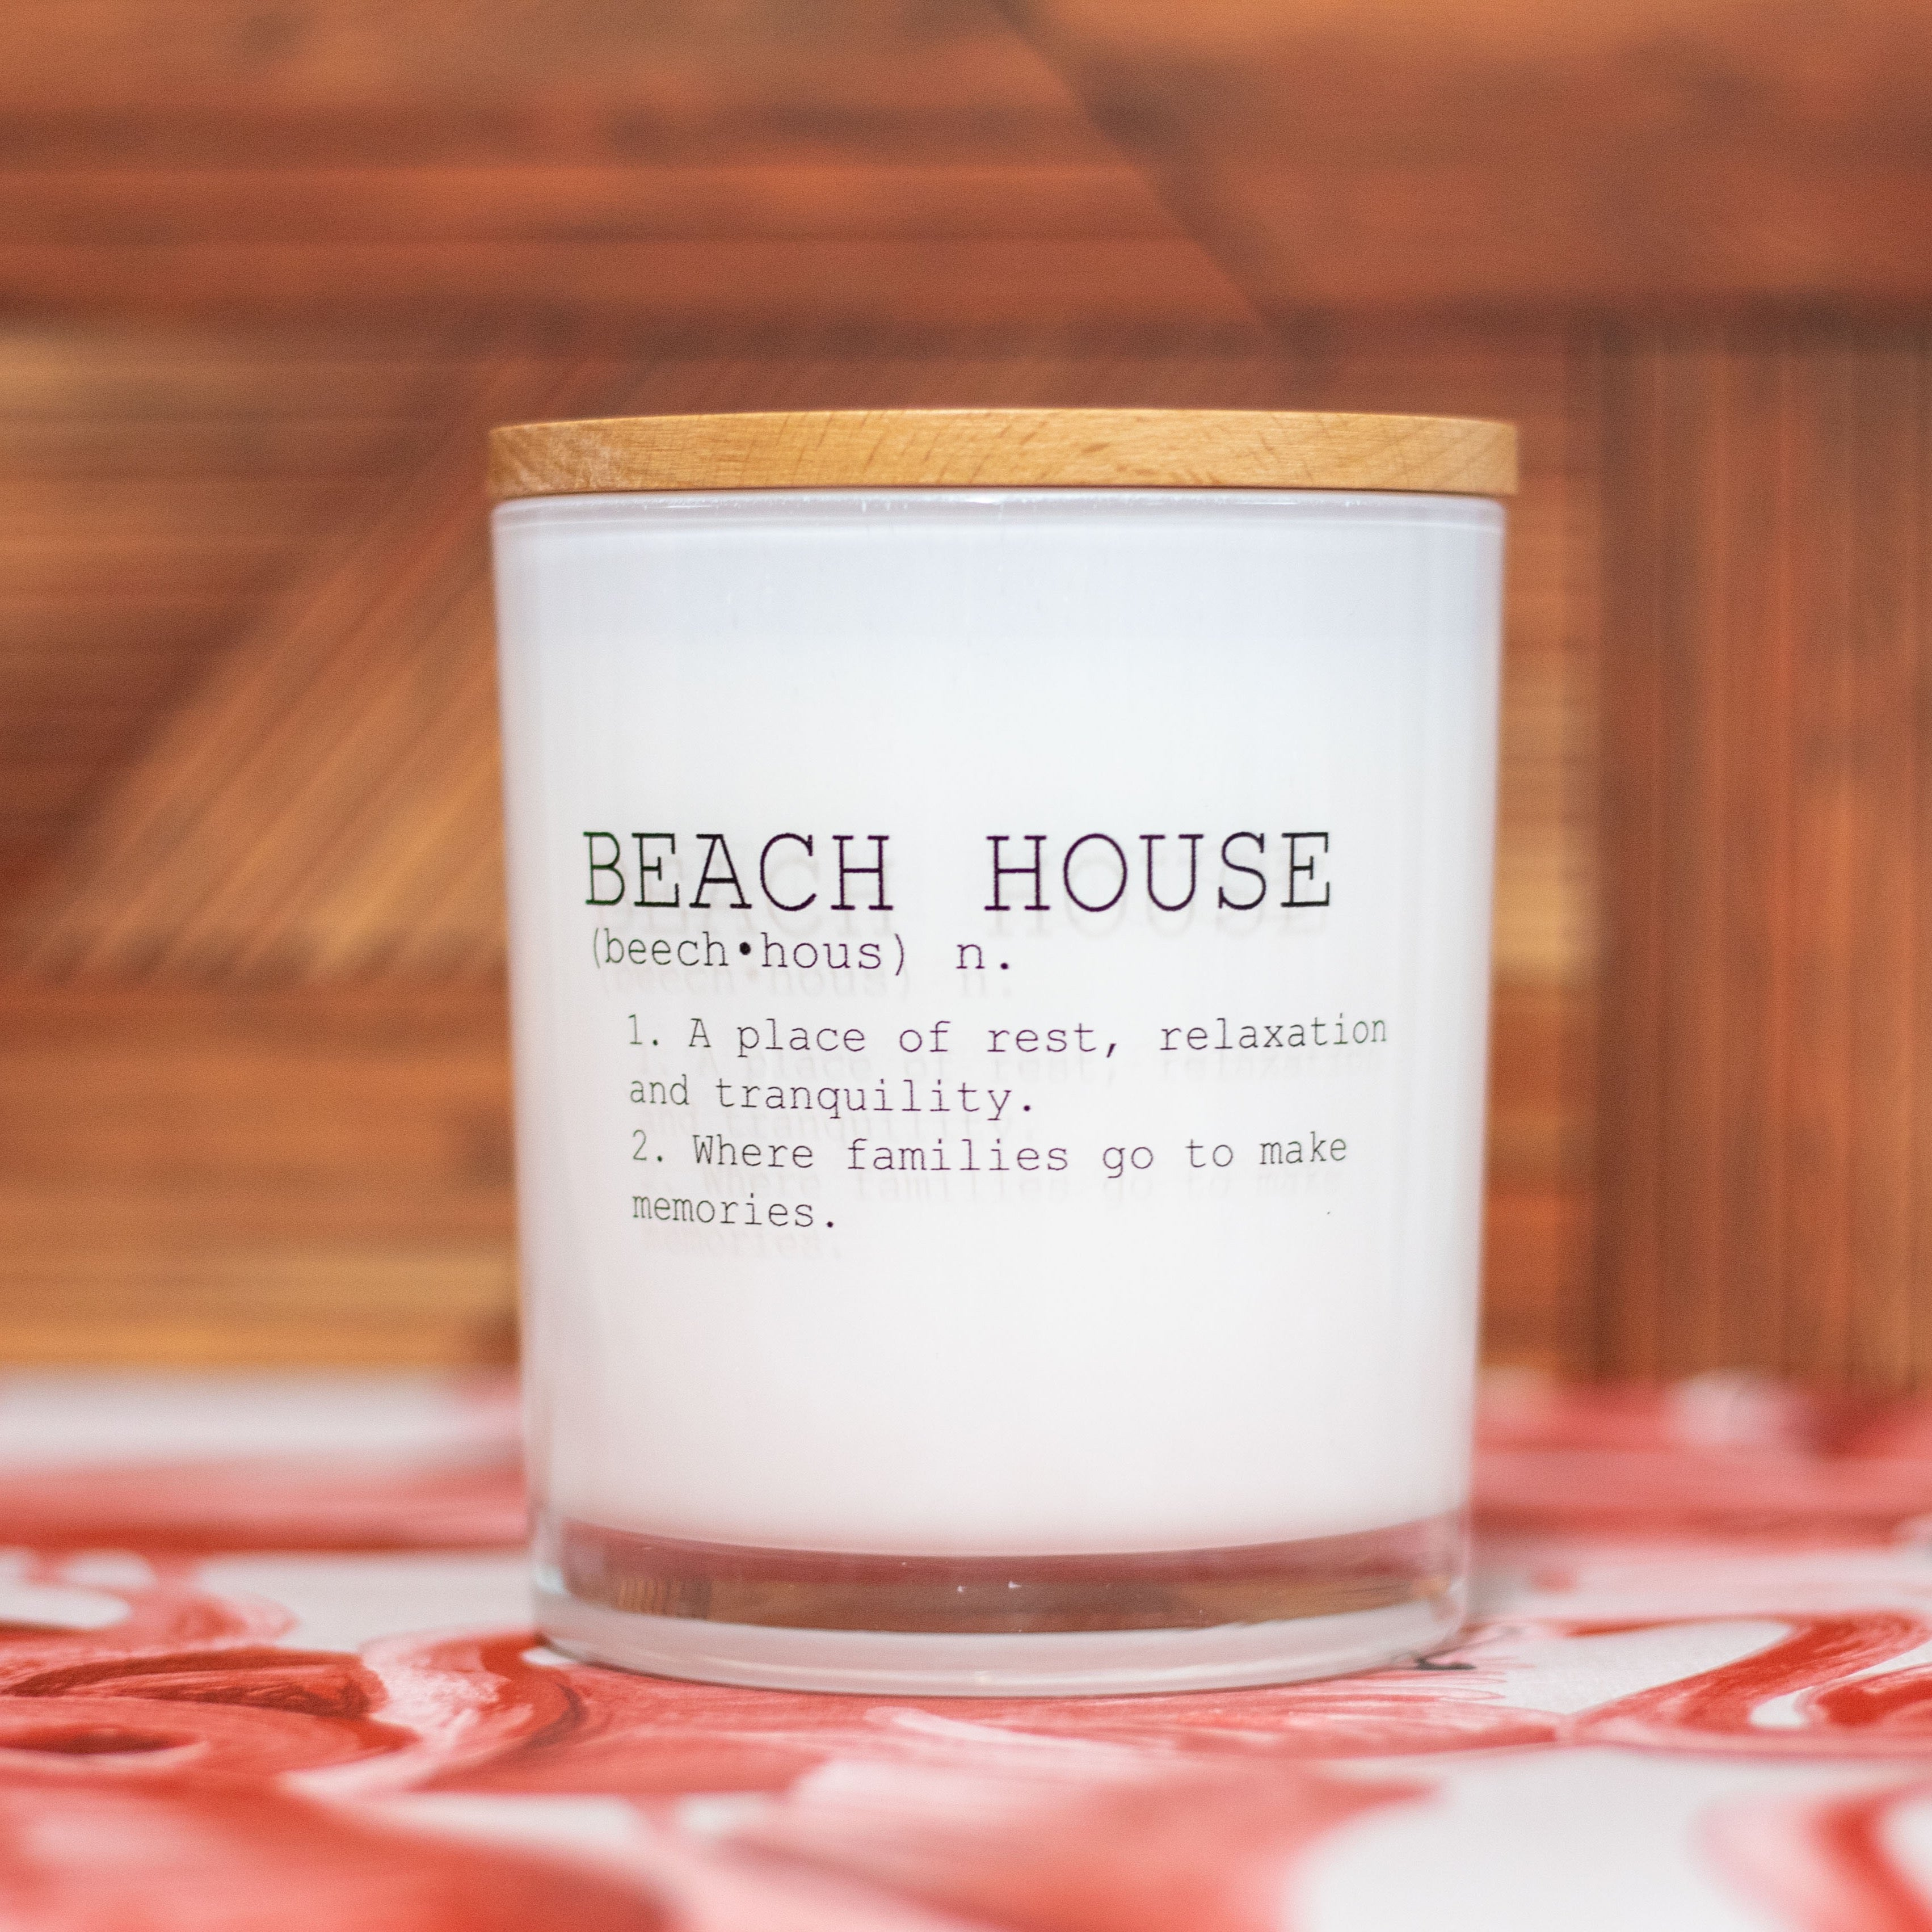 BEACH%20HOUSE%20DEFINITION%20CANDLE